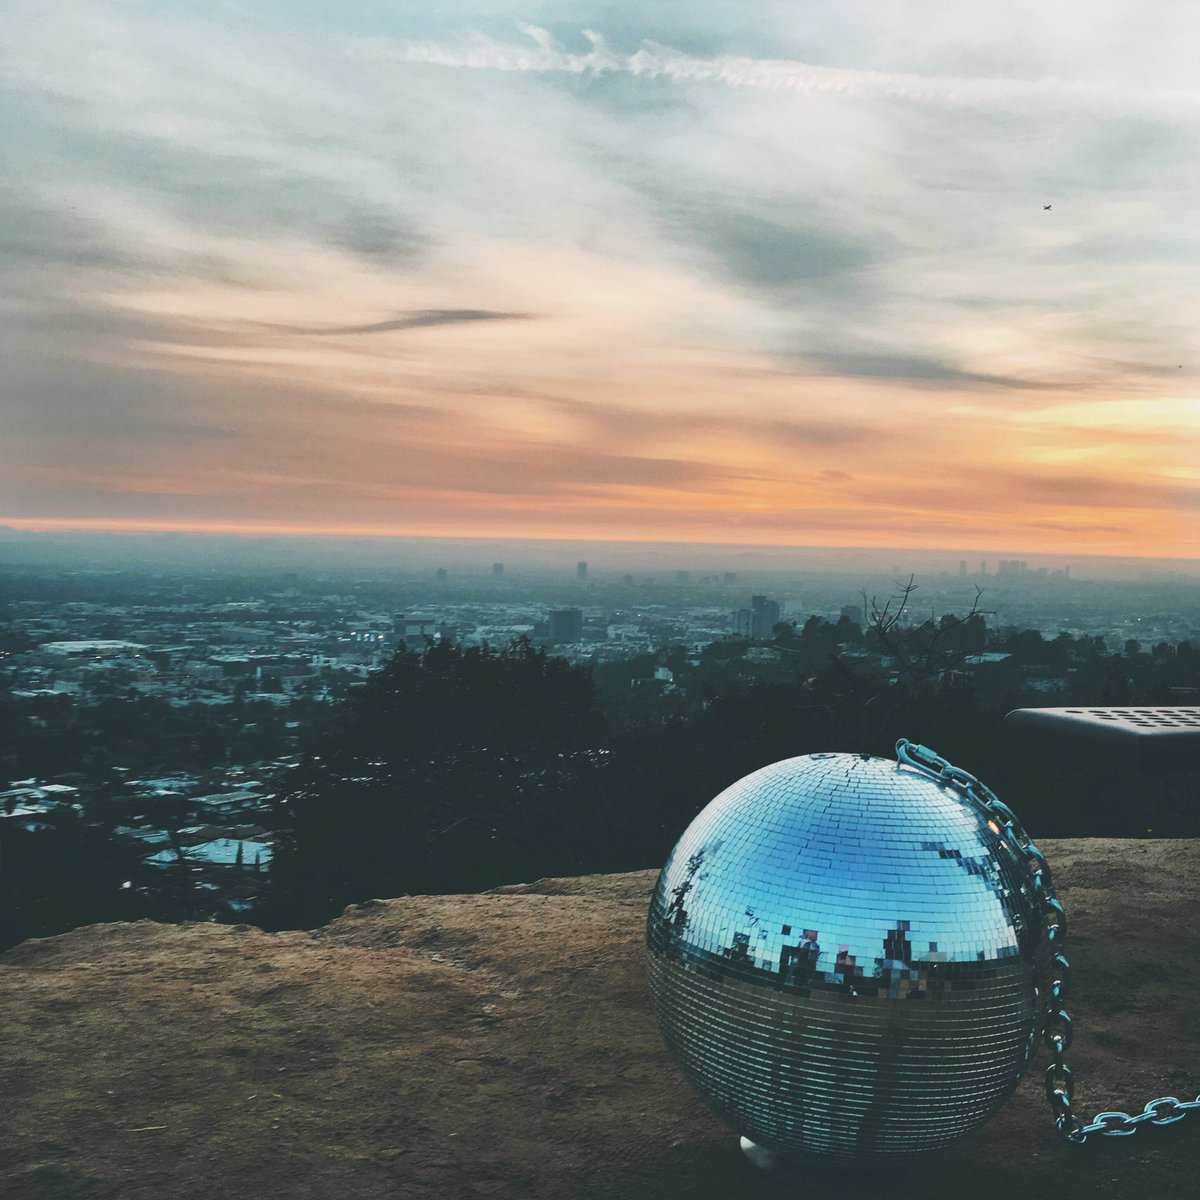 disco dreams in a los angeles scene // #chainedtotherhythm #katyperry @katyperry https://t.co/TEg4TMW6xK